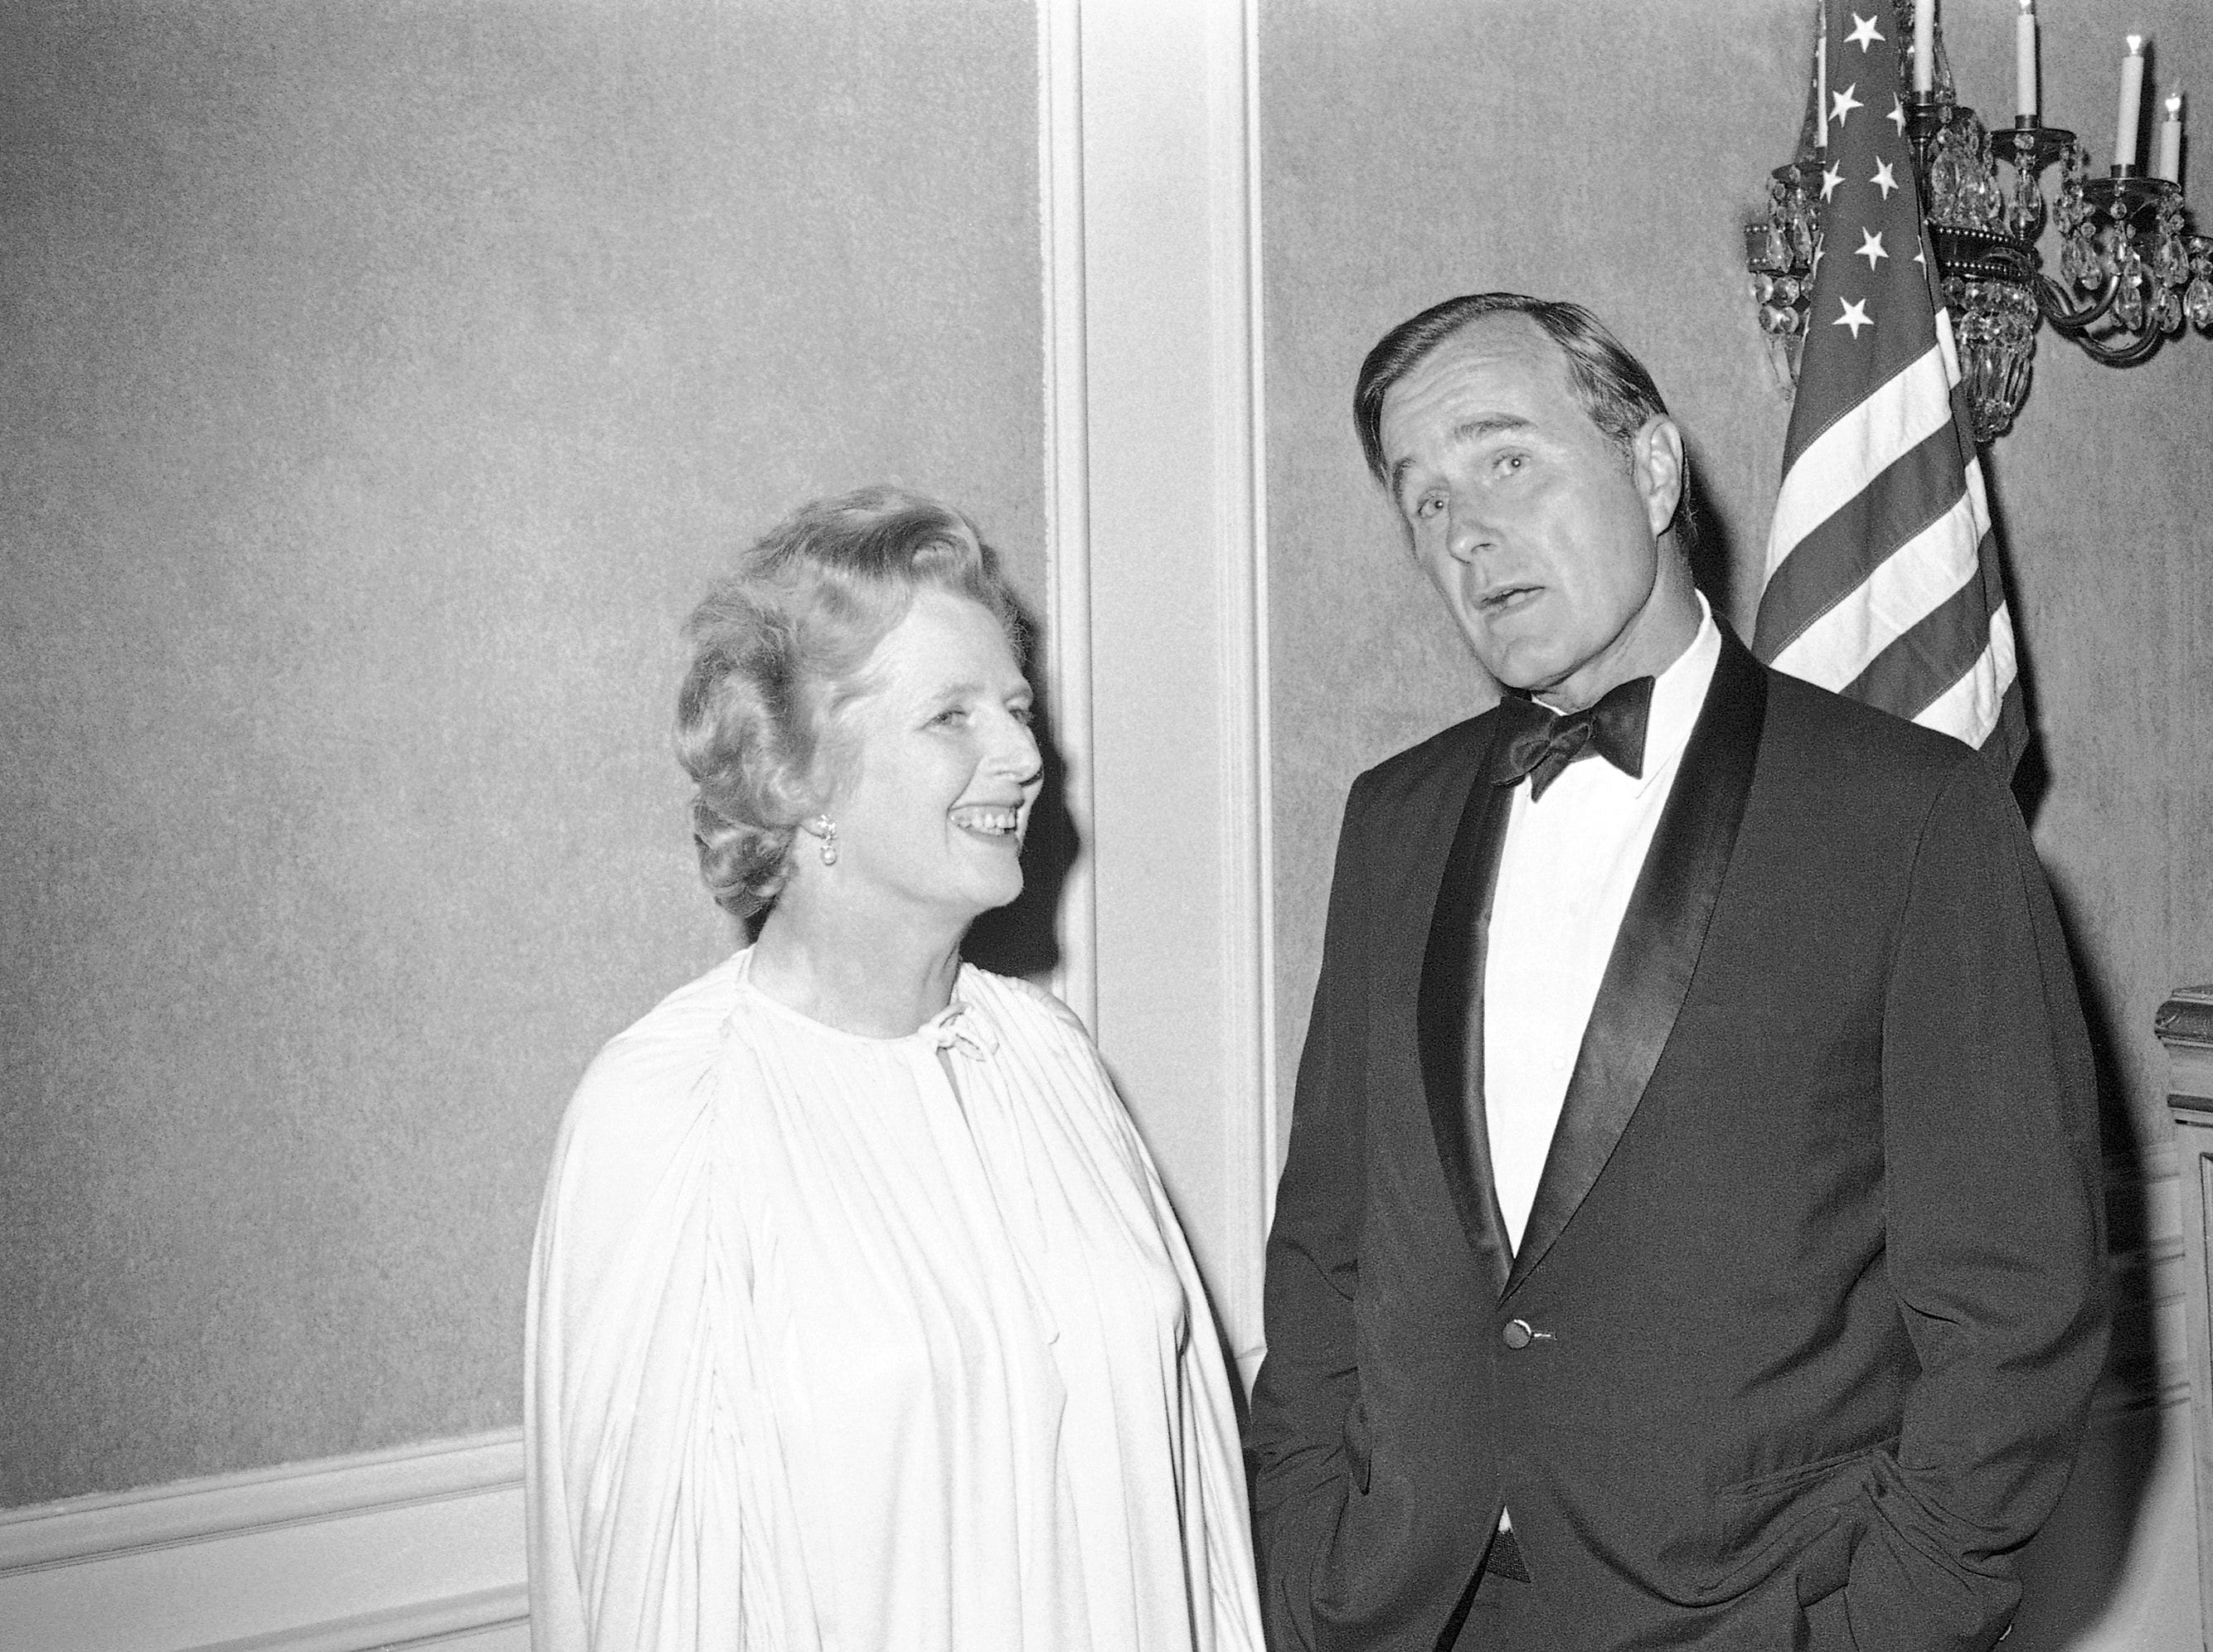 Margaret Thatcher, left, leader of the British Conservative Party, talking with George H.W. Bush, right, former CIA Director on Friday, Sept. 9, 1977 at Houston, prior to her dinner address before the English-Speaking Union.    Bush introduced her to the guests. (AP Photo/)Ed Kolenovsky)